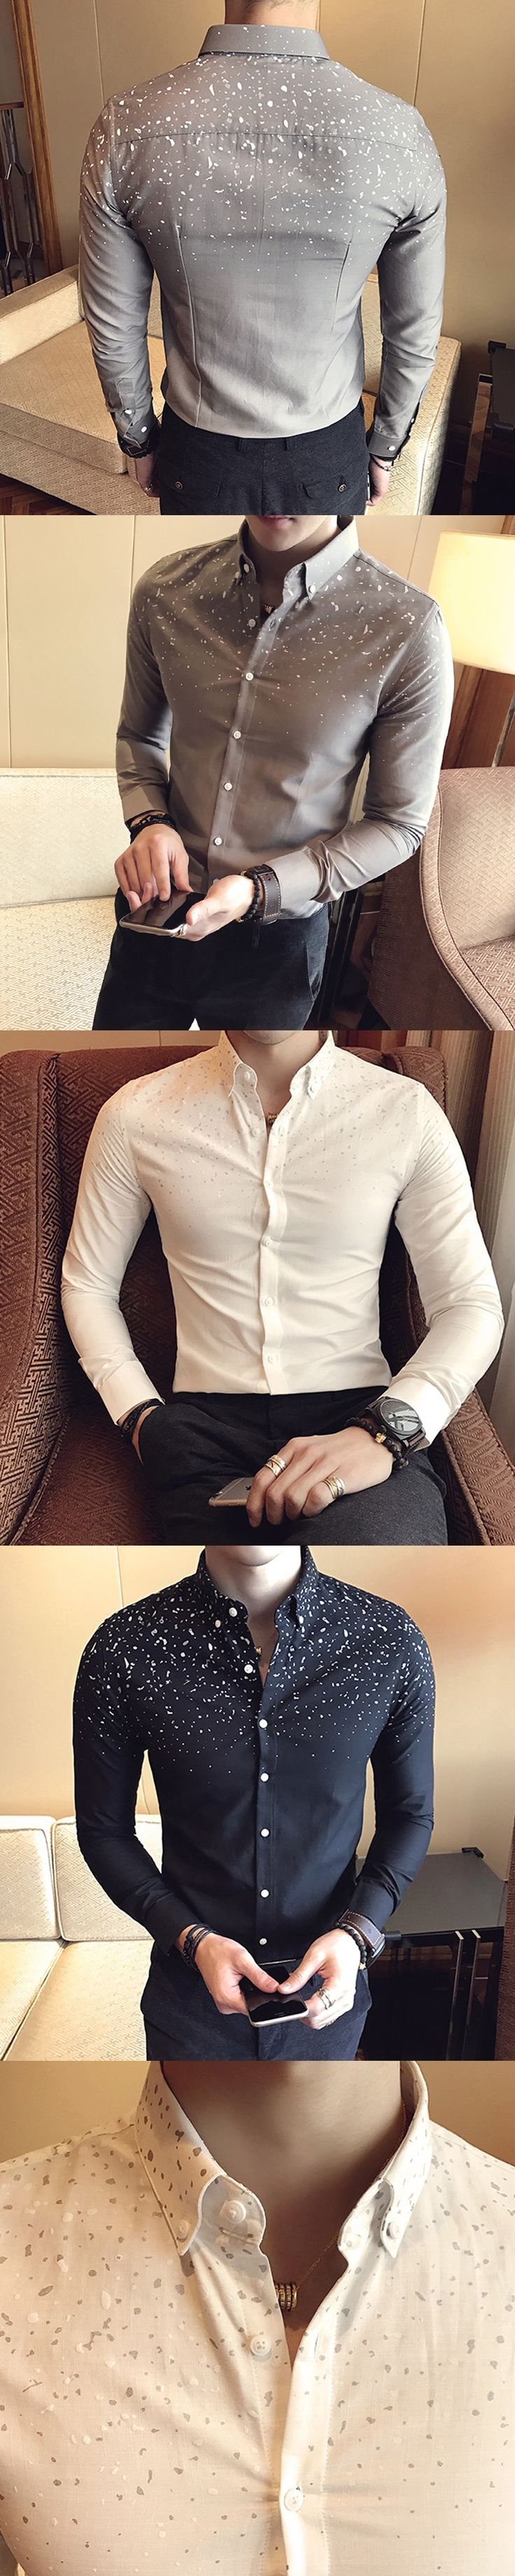 Flowered Mens Shirts British Style Casual Men White Shirts Camisa Social Slim Fit Club Camisas Hombre Flores Herren Hemd Weiss